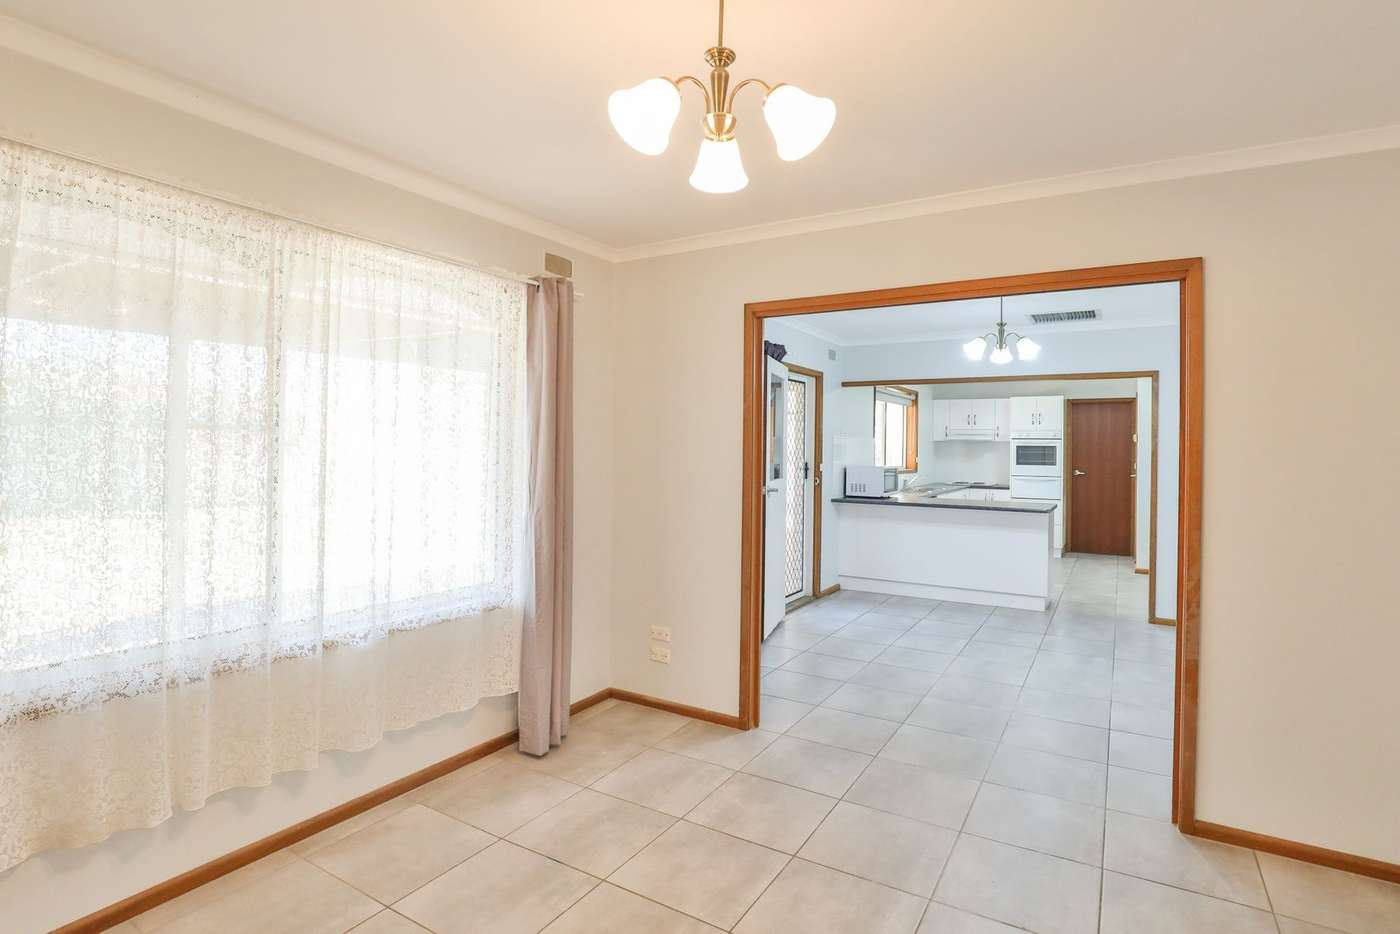 Fifth view of Homely house listing, 53 Brian Street, Mildura VIC 3500